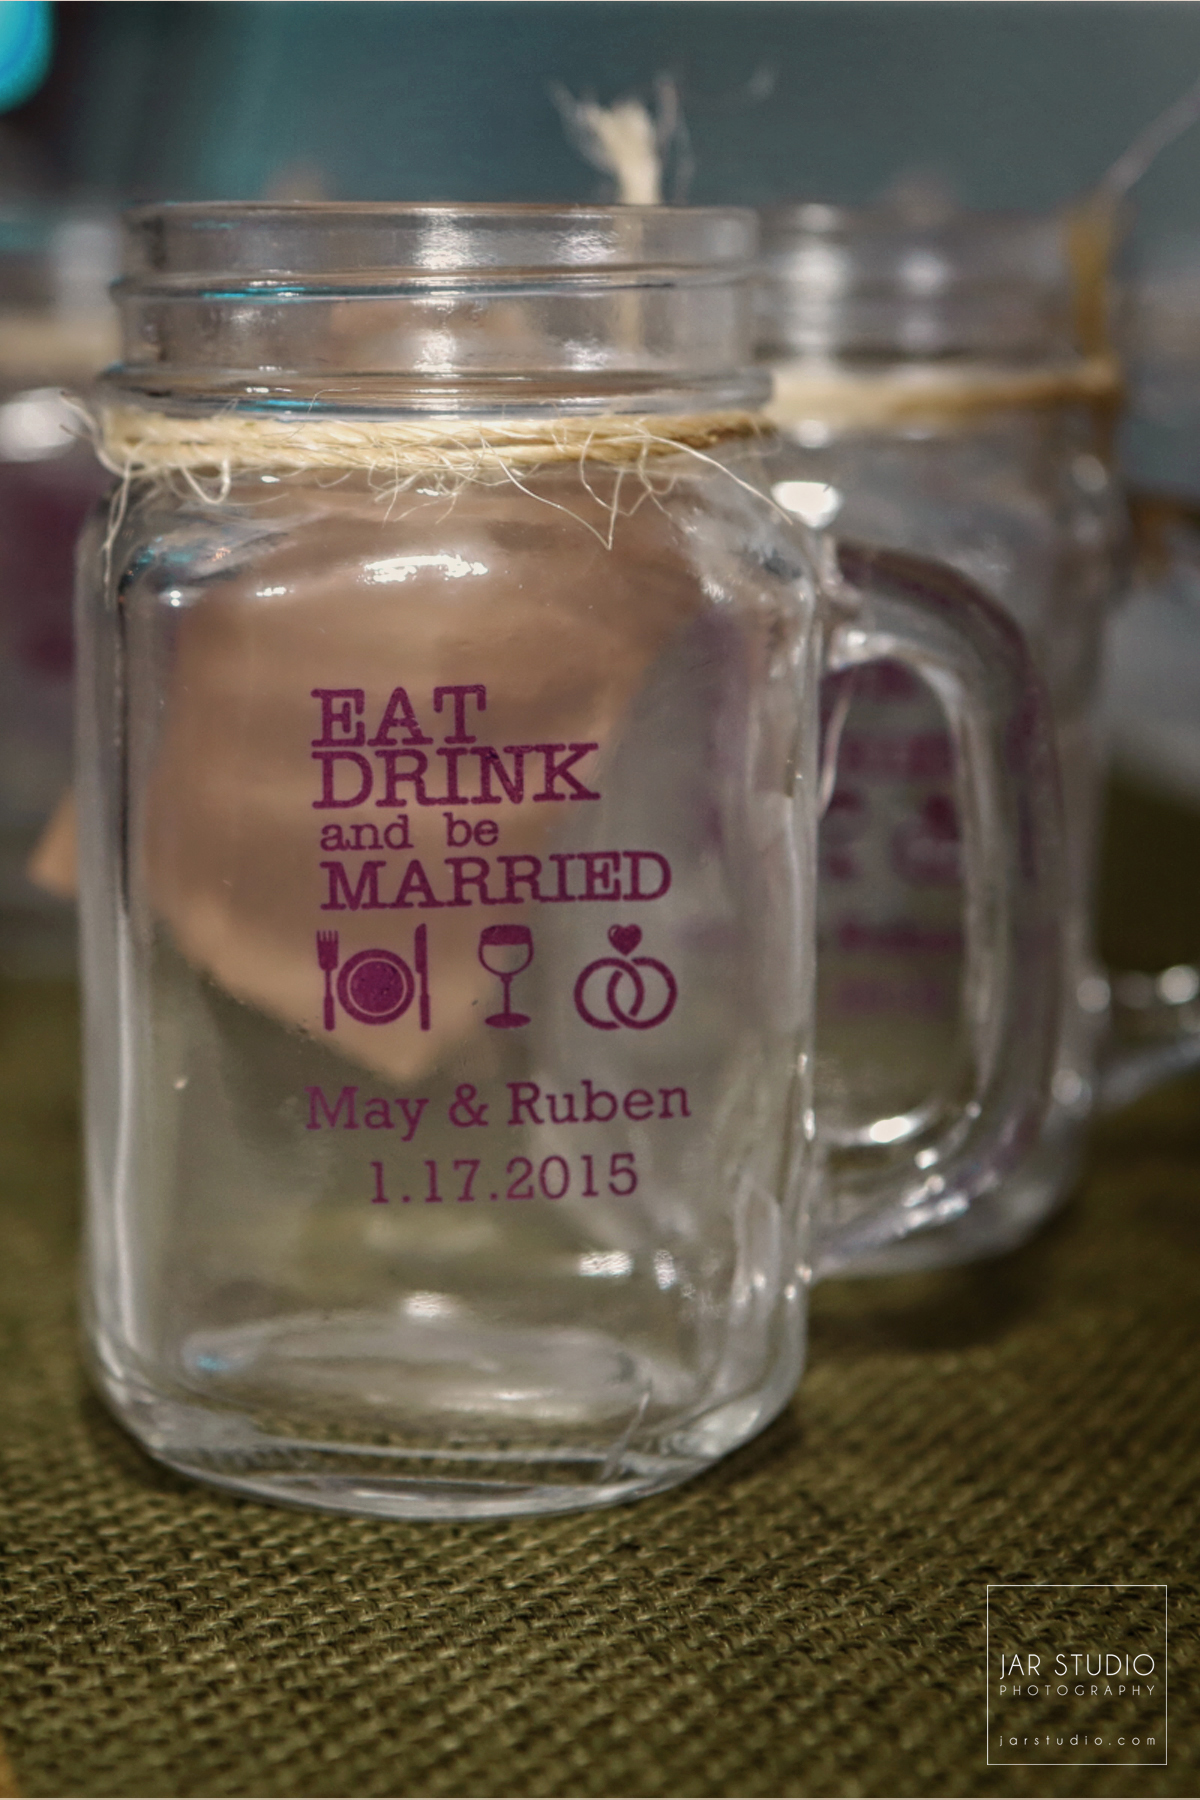 31-orlando-unique-wedding-favors-jarstudio-photography.JPG